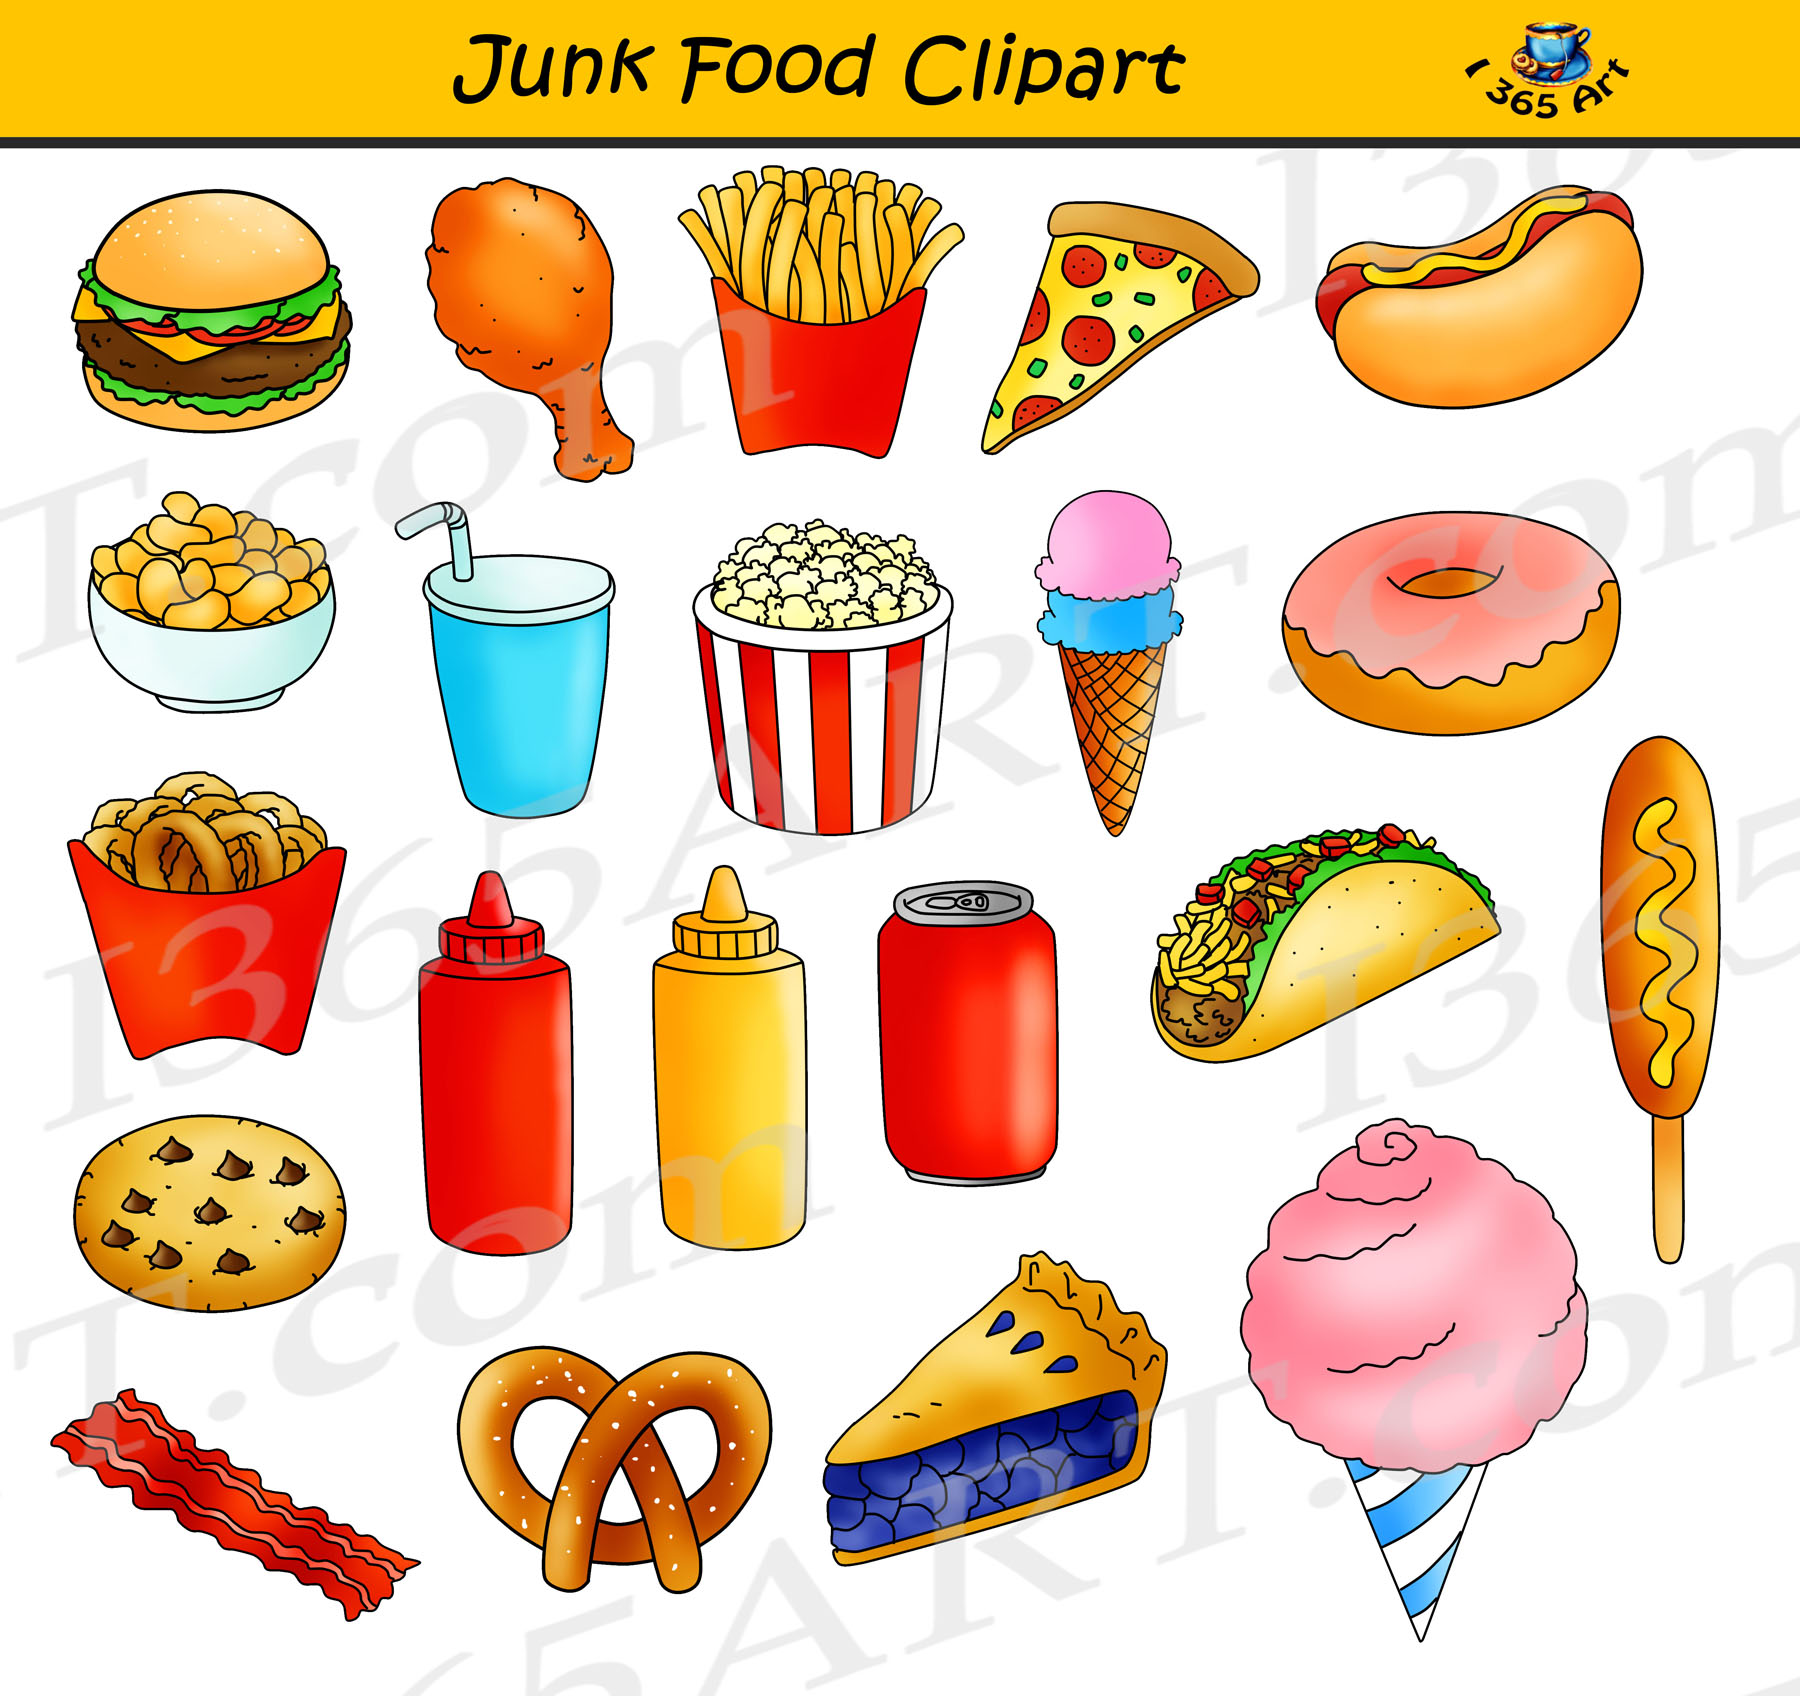 Junk Food Clipart Fast Food Graphics Commercial Use Clipart 4 School